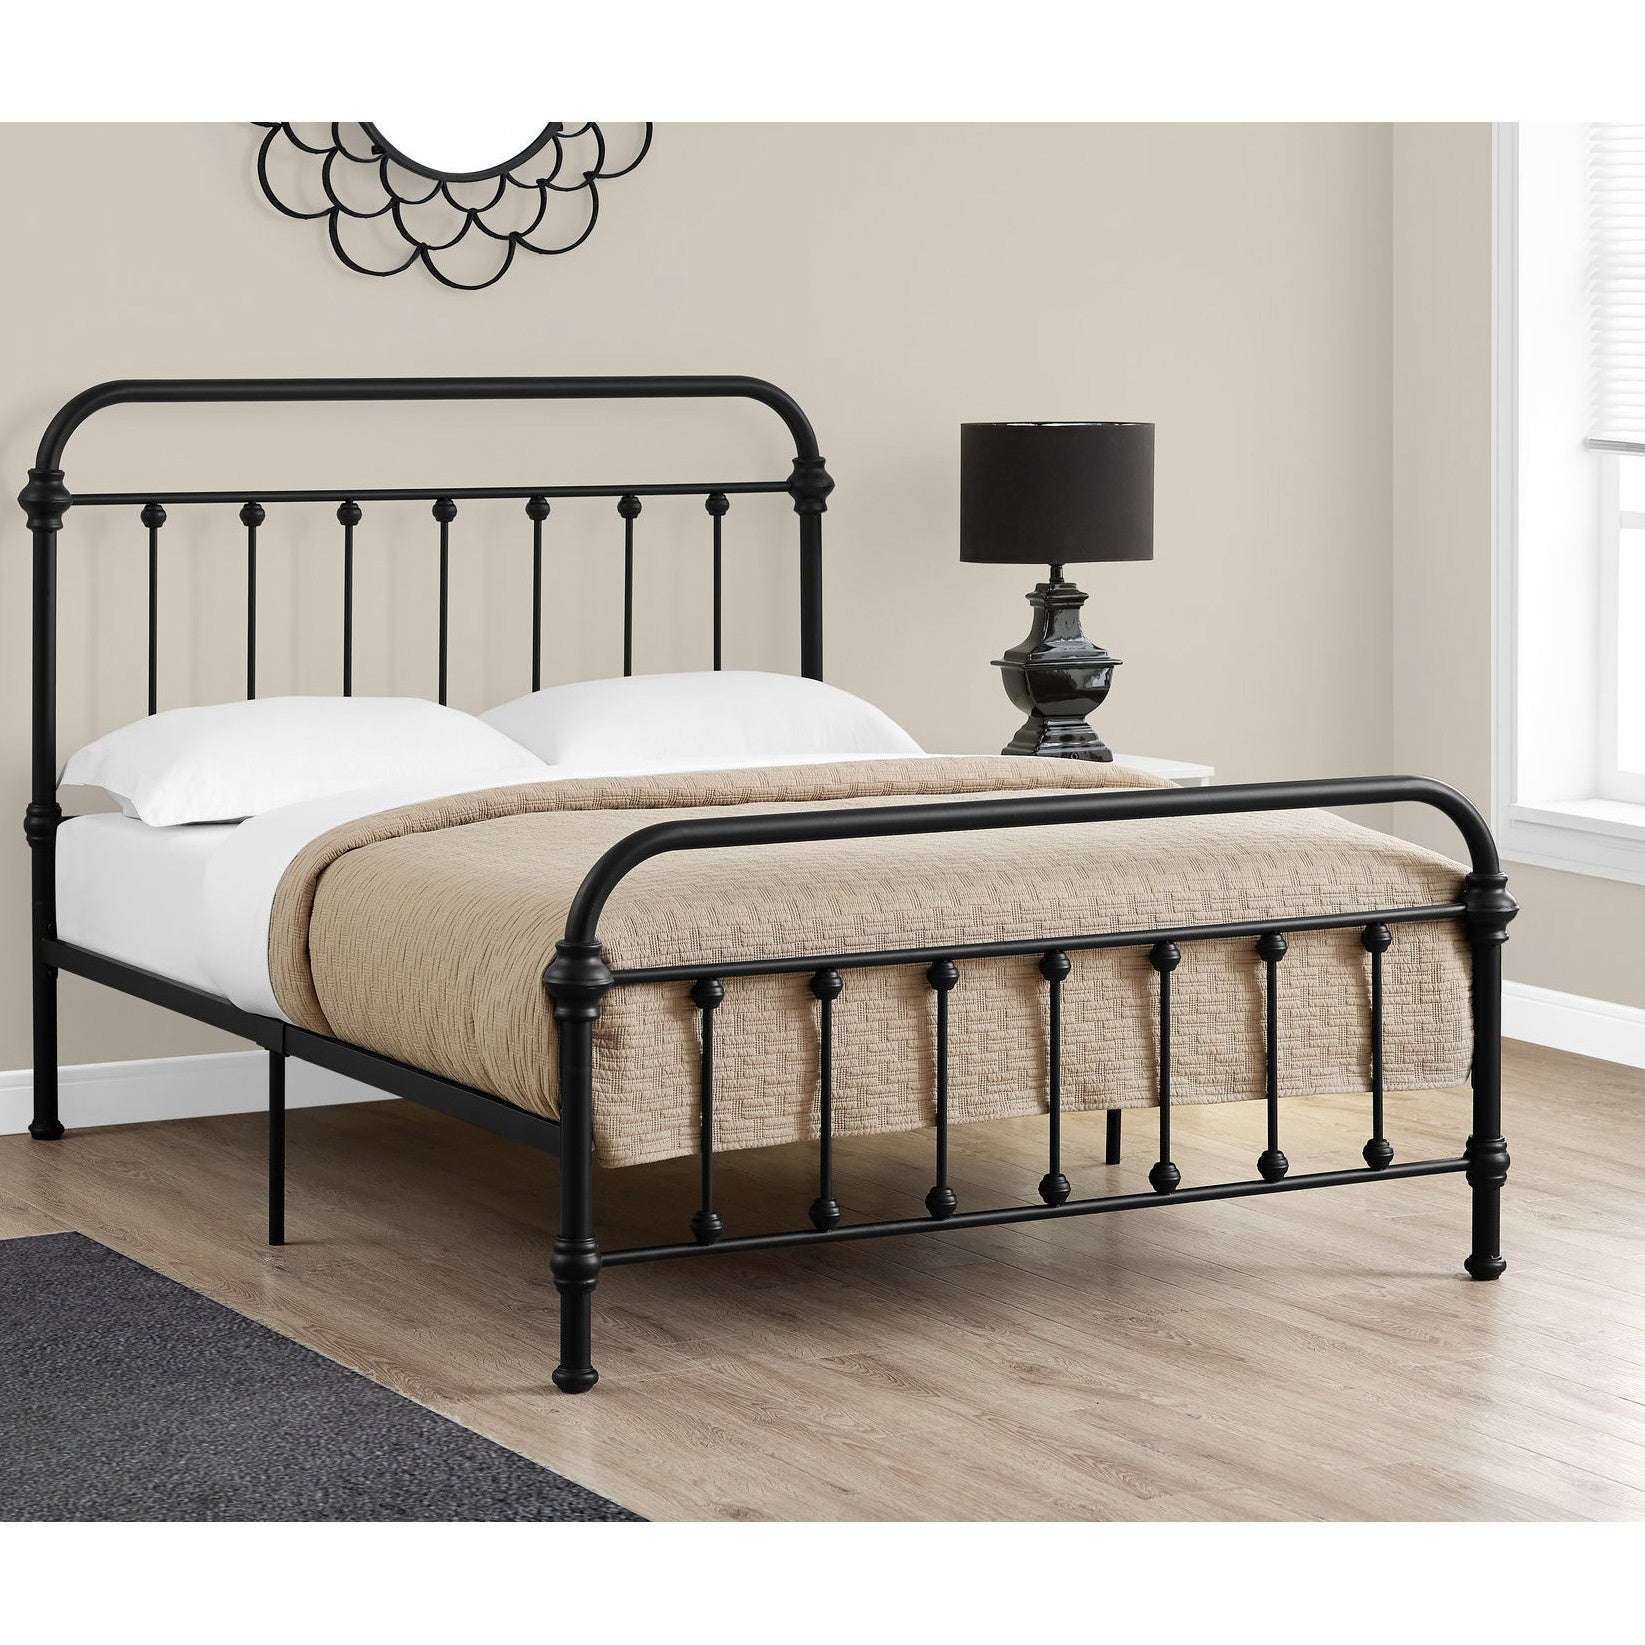 bed frames for full size beds shop monarch black metal size bed frame free 20230